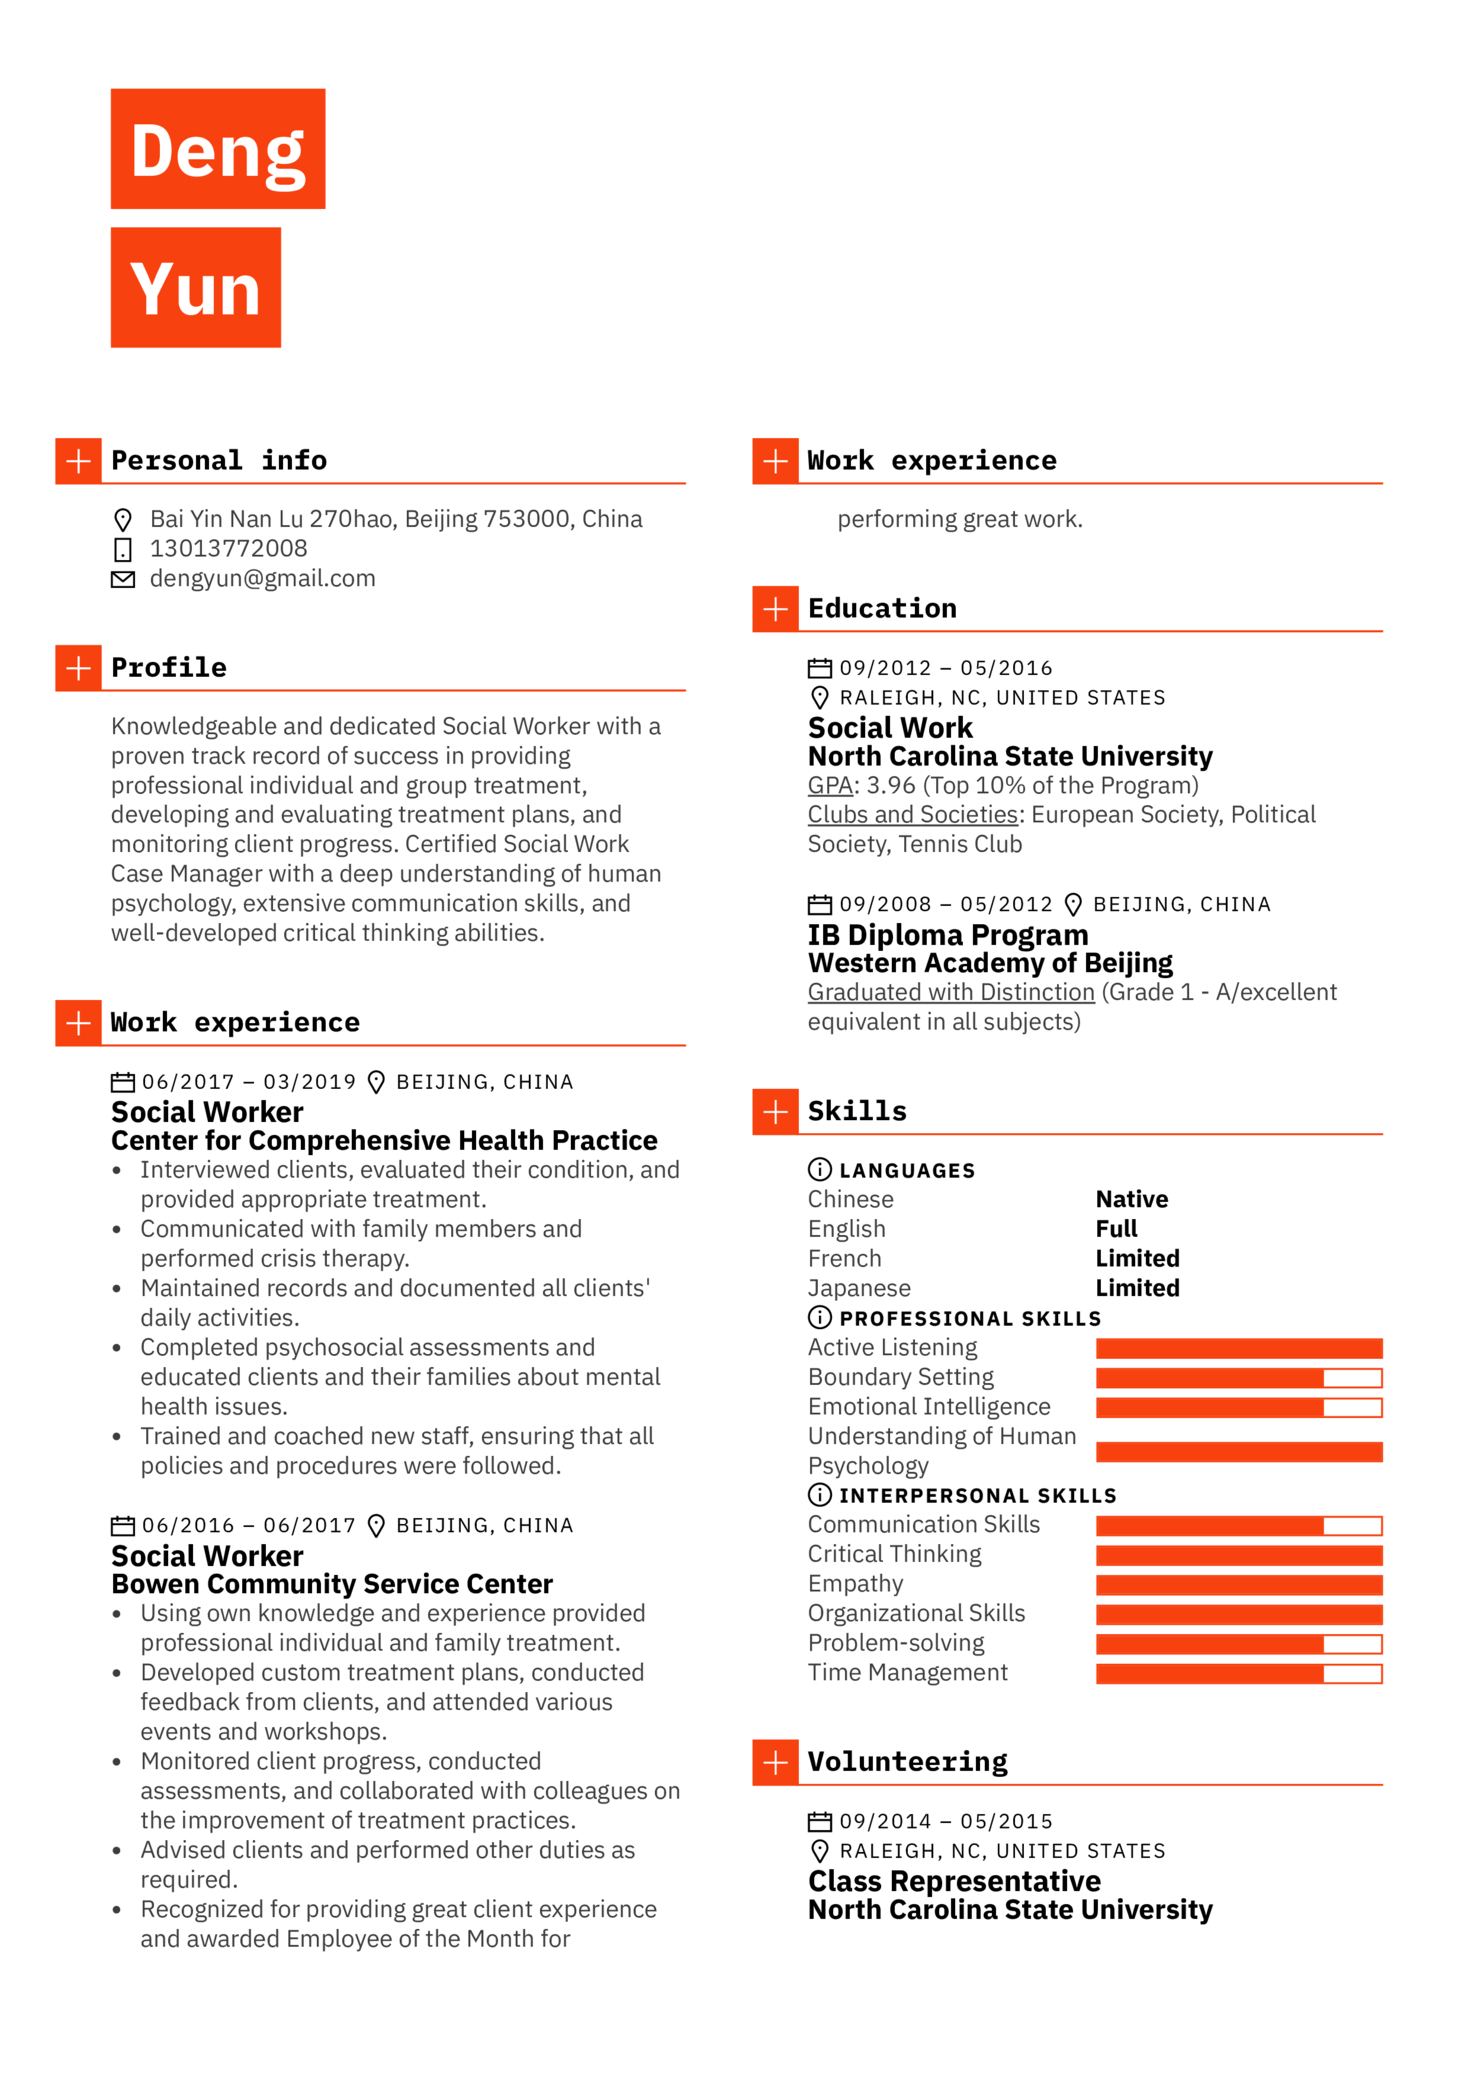 Social Worker Resume Example (parte 1)